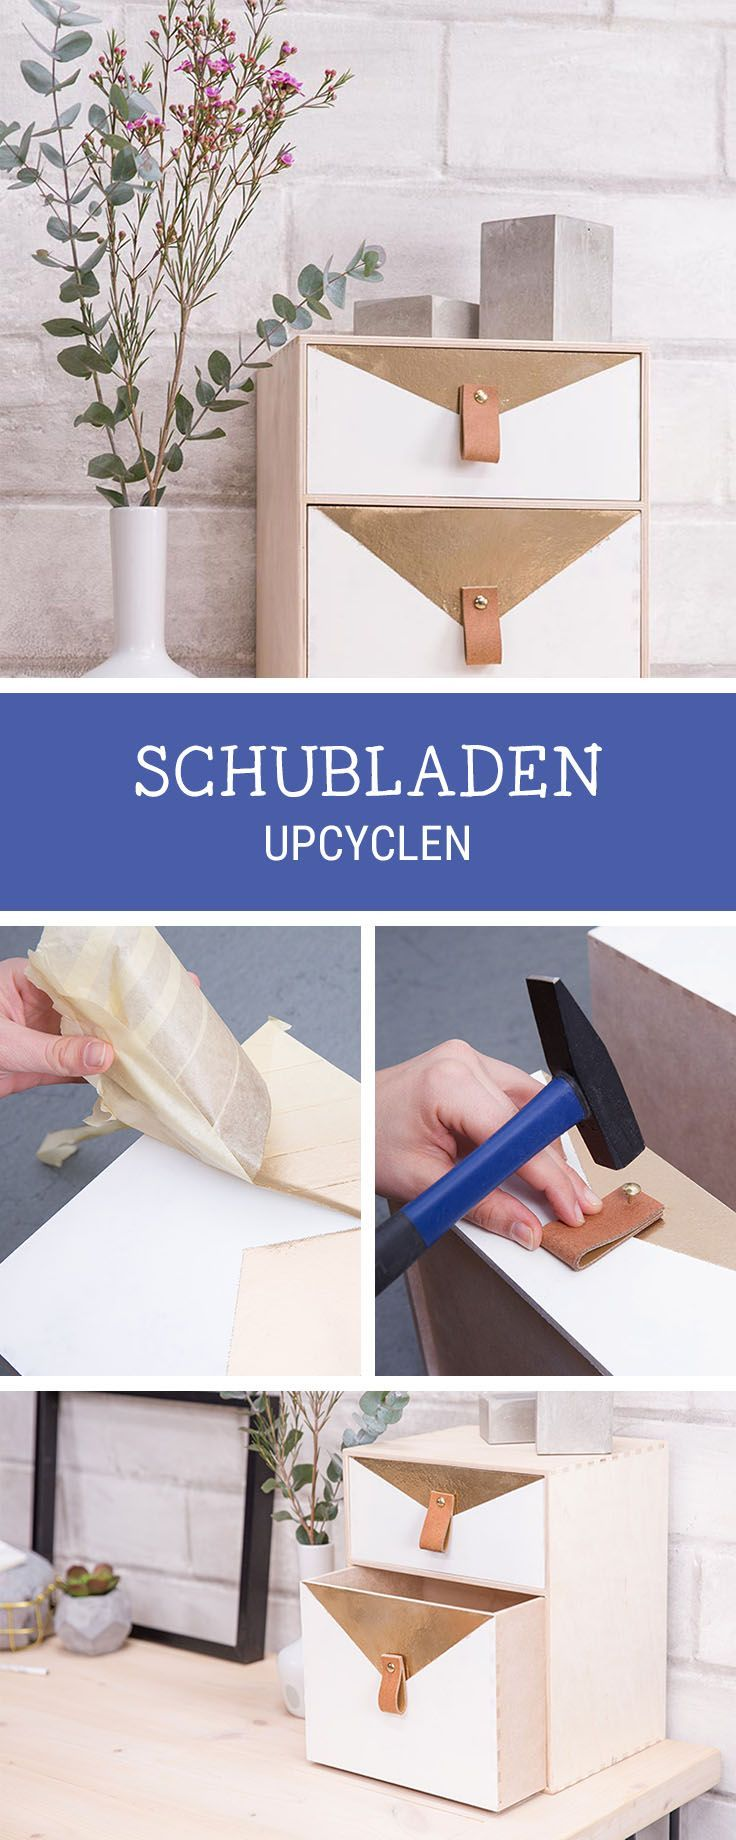 Einfaches Möbel-DIY: Schublade in ein Schreibtisch-Utensilo verwandeln / upcycling diy: turn a drawer into an utensilo for your workspace, storage idea via DaWanda.com